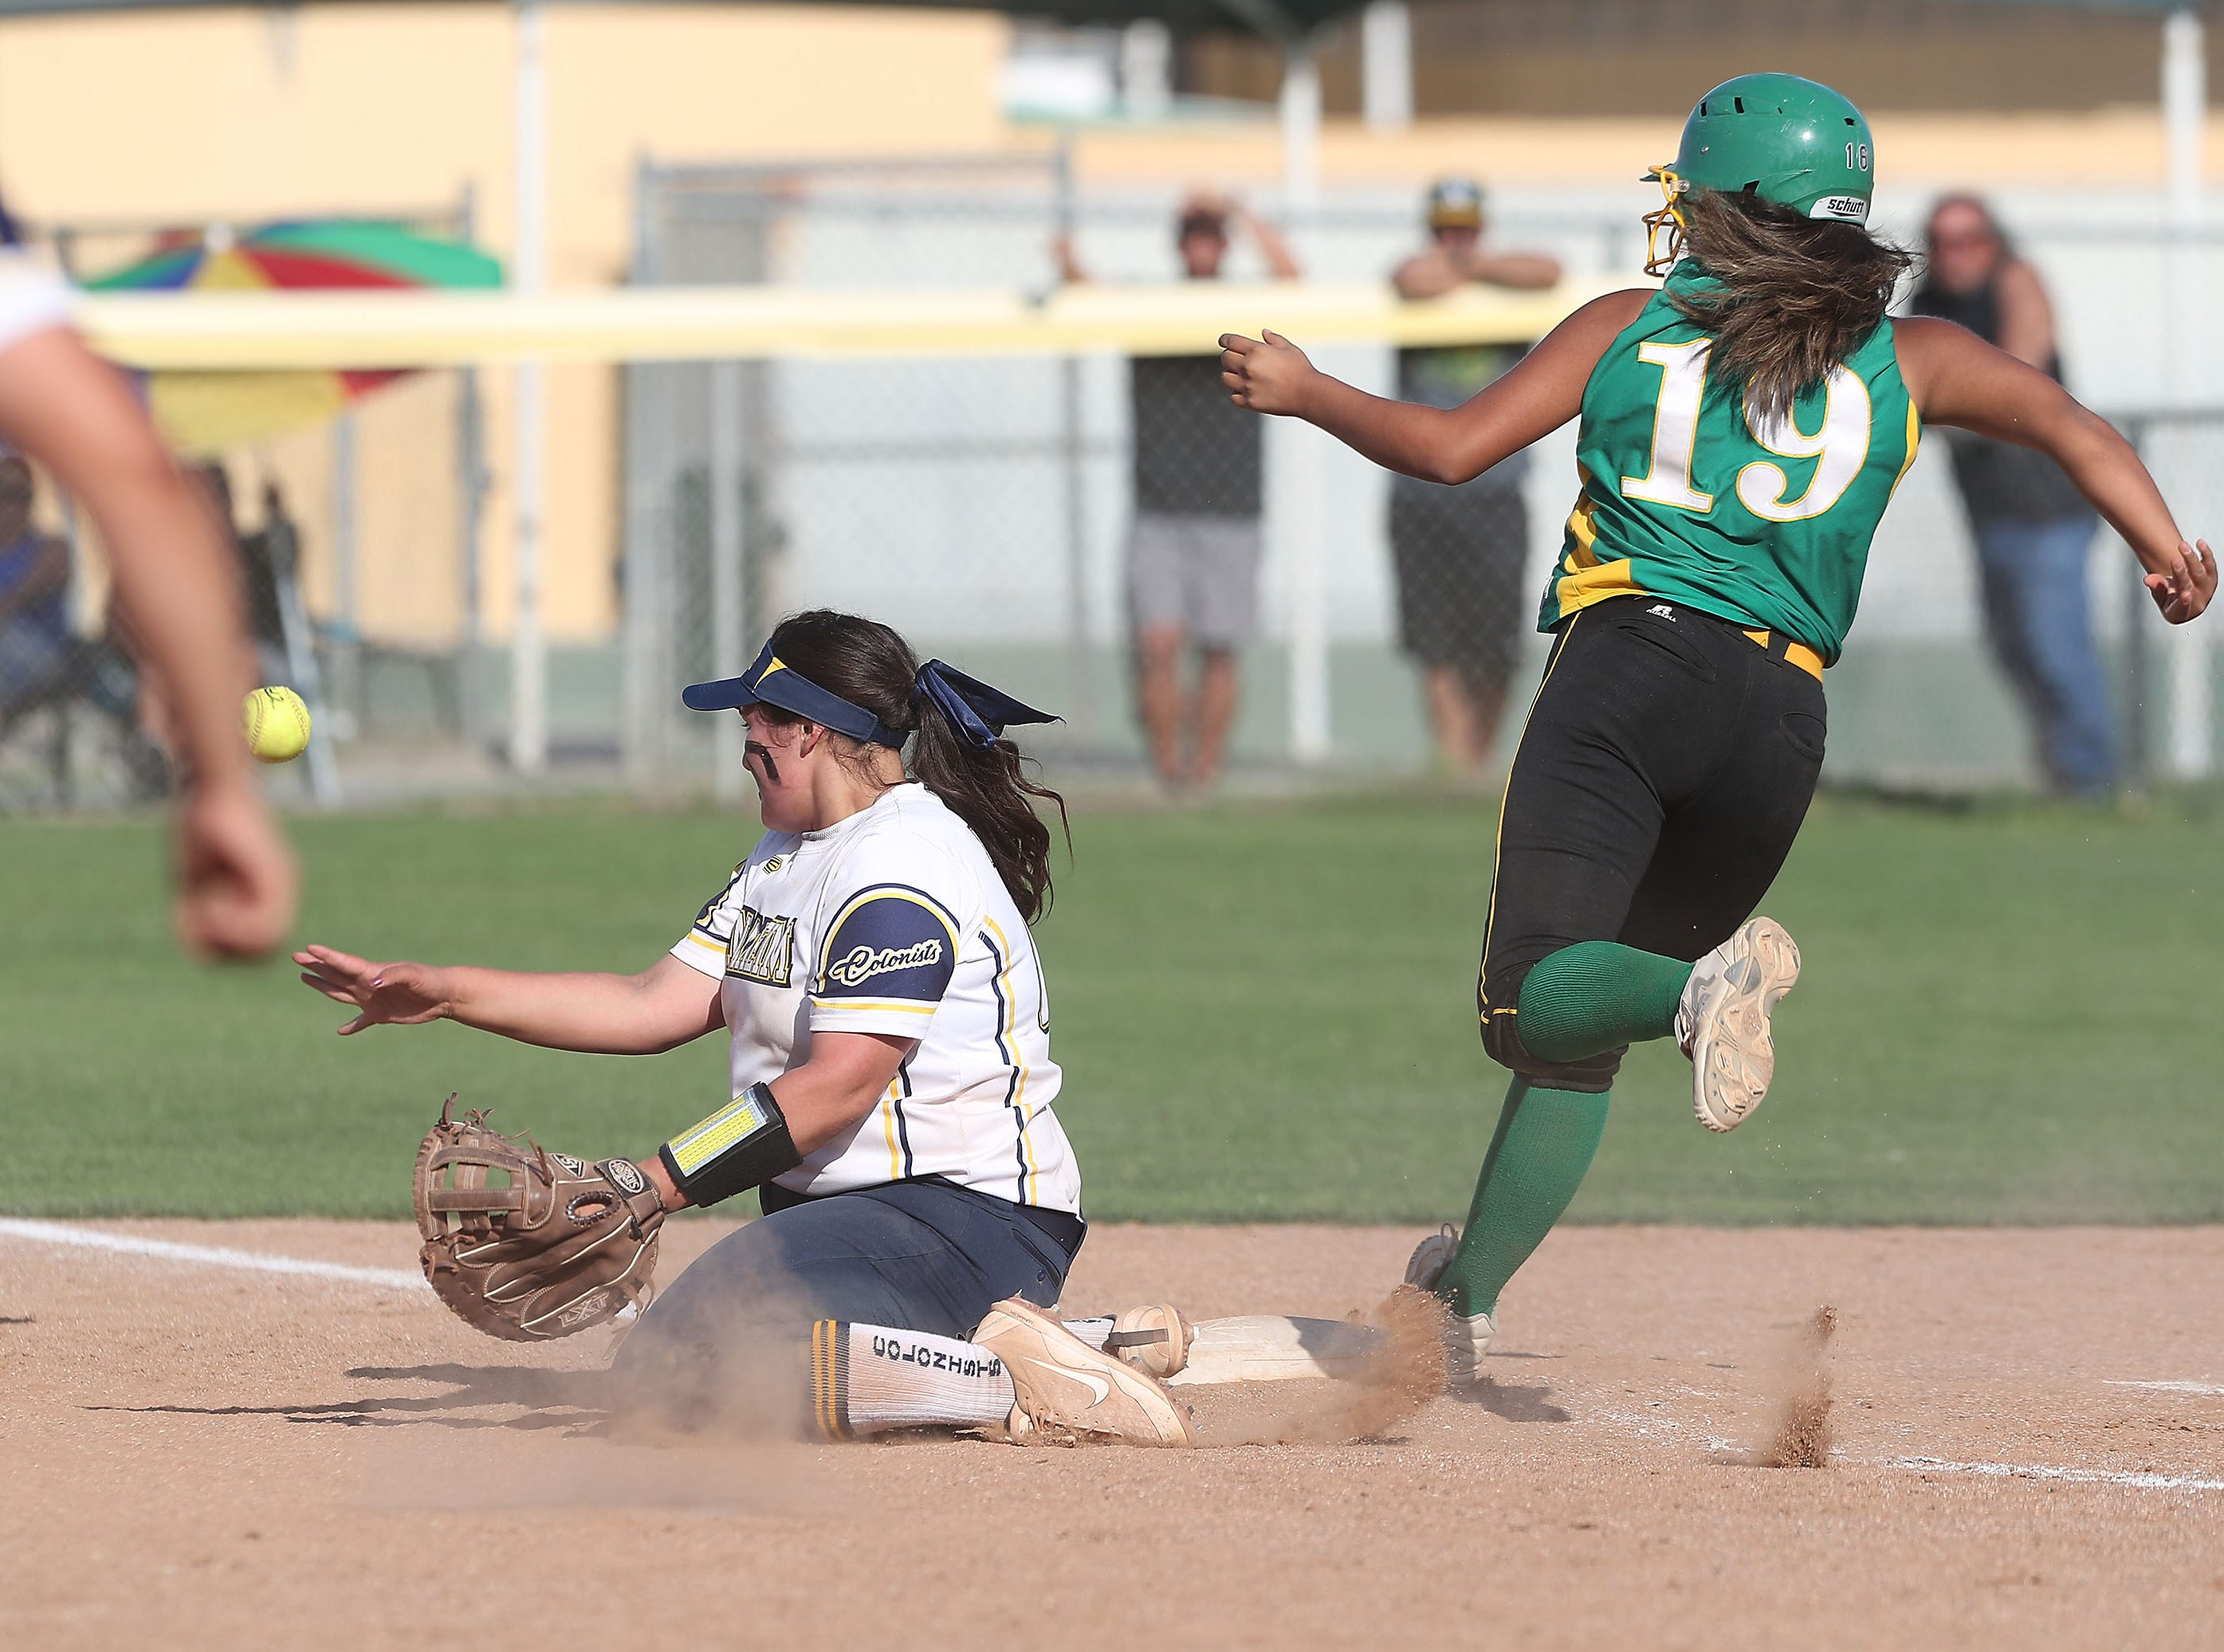 #19 of Coachella Valley hustles to first safely against Anaheim, May 9, 2019.